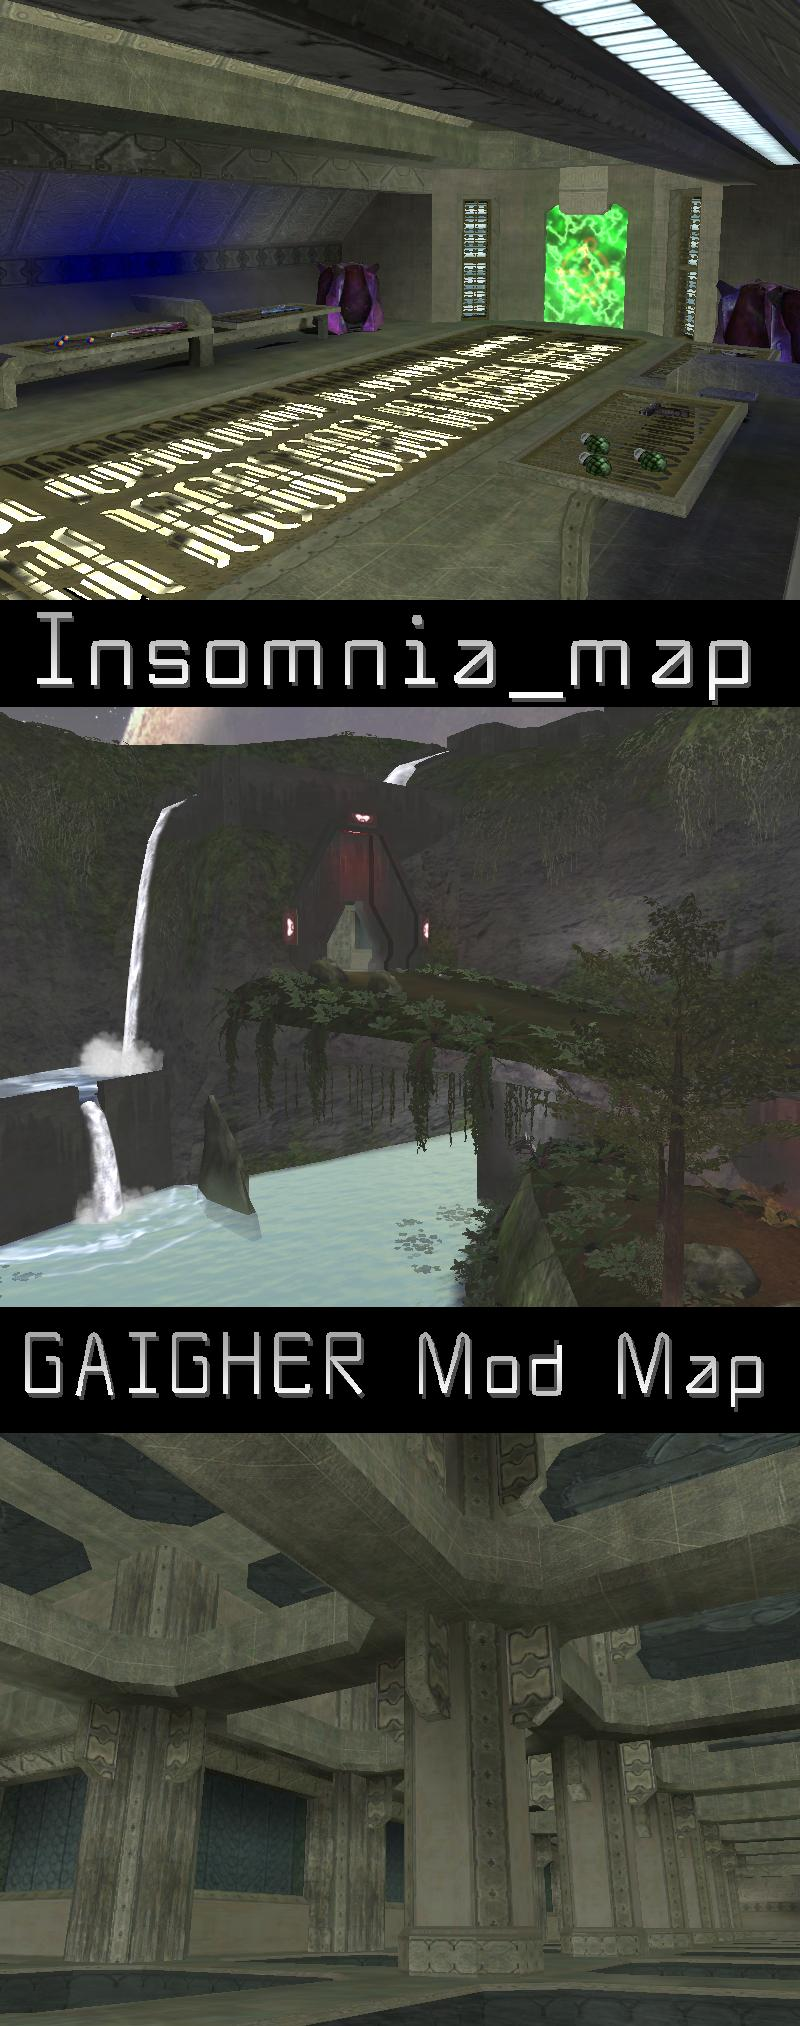 Insomnia_map Insomnia maphaloce map halo ce<br />maphalo halomap carte cartes cr&eacute;ation GAIGHER mod